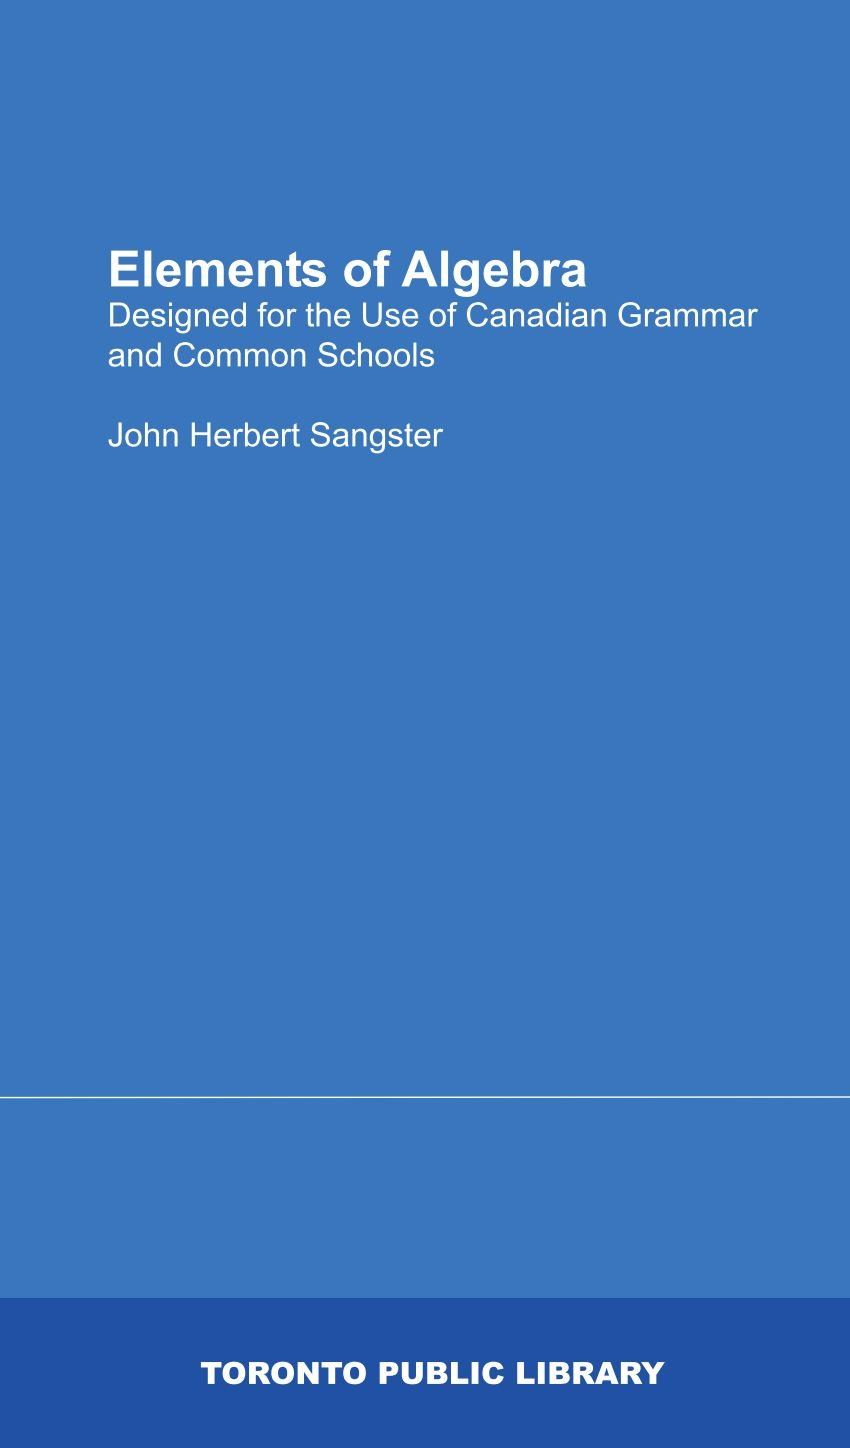 Elements of Algebra: Designed for the Use of Canadian Grammar and Common Schools pdf